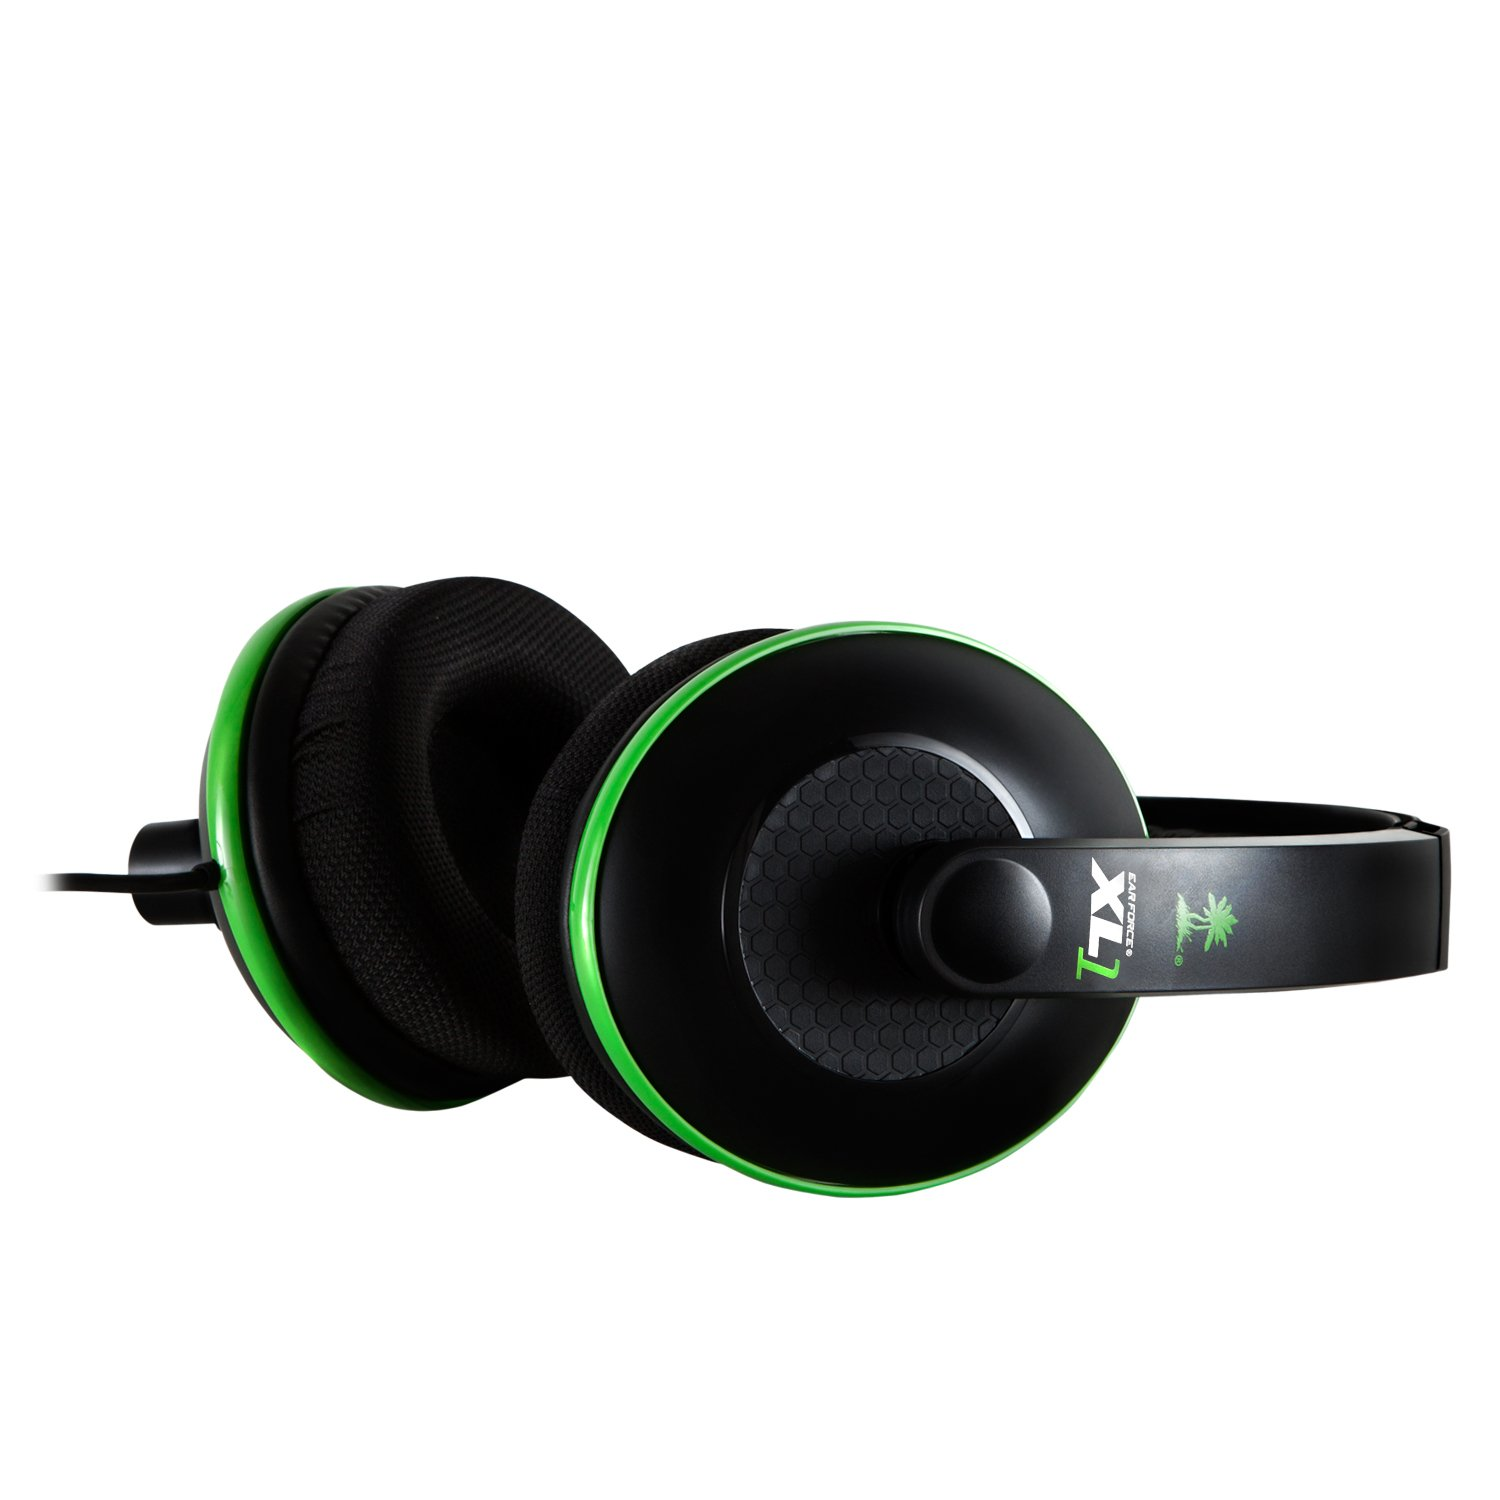 how to connect turtle beach to xbox 360